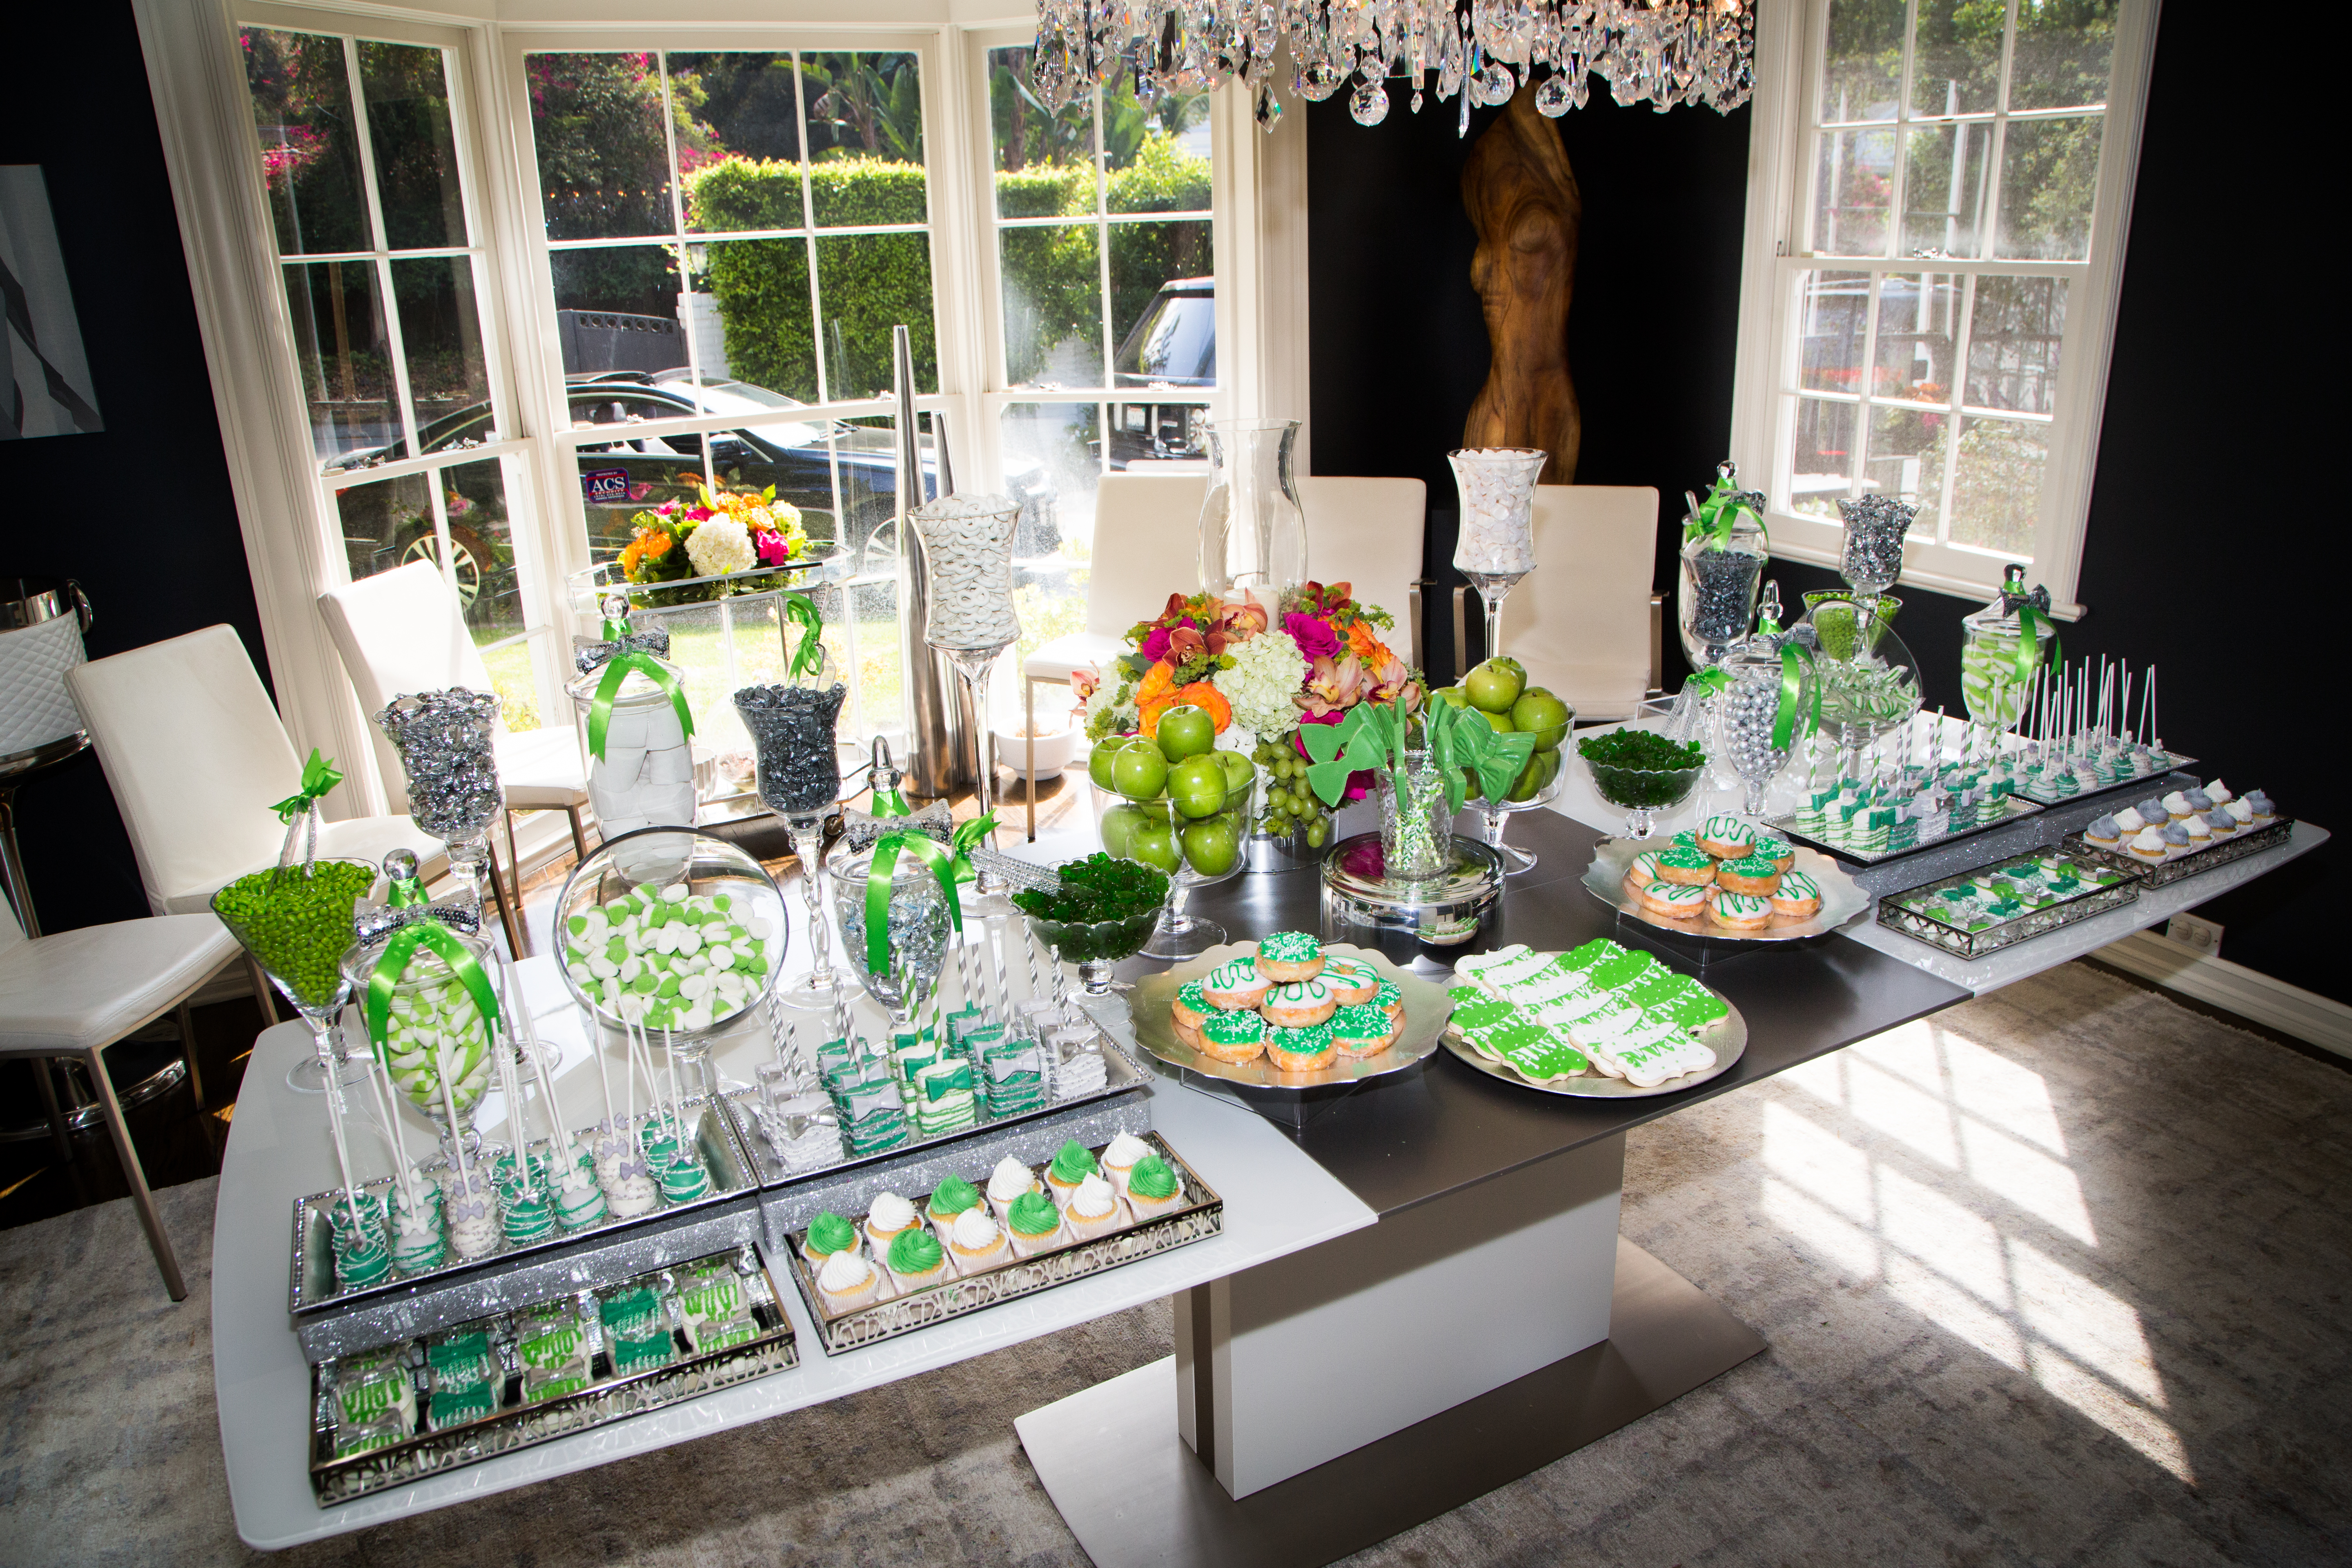 Baby Niam's 100th Day Bow Tie Party, green accent candy bar buffet